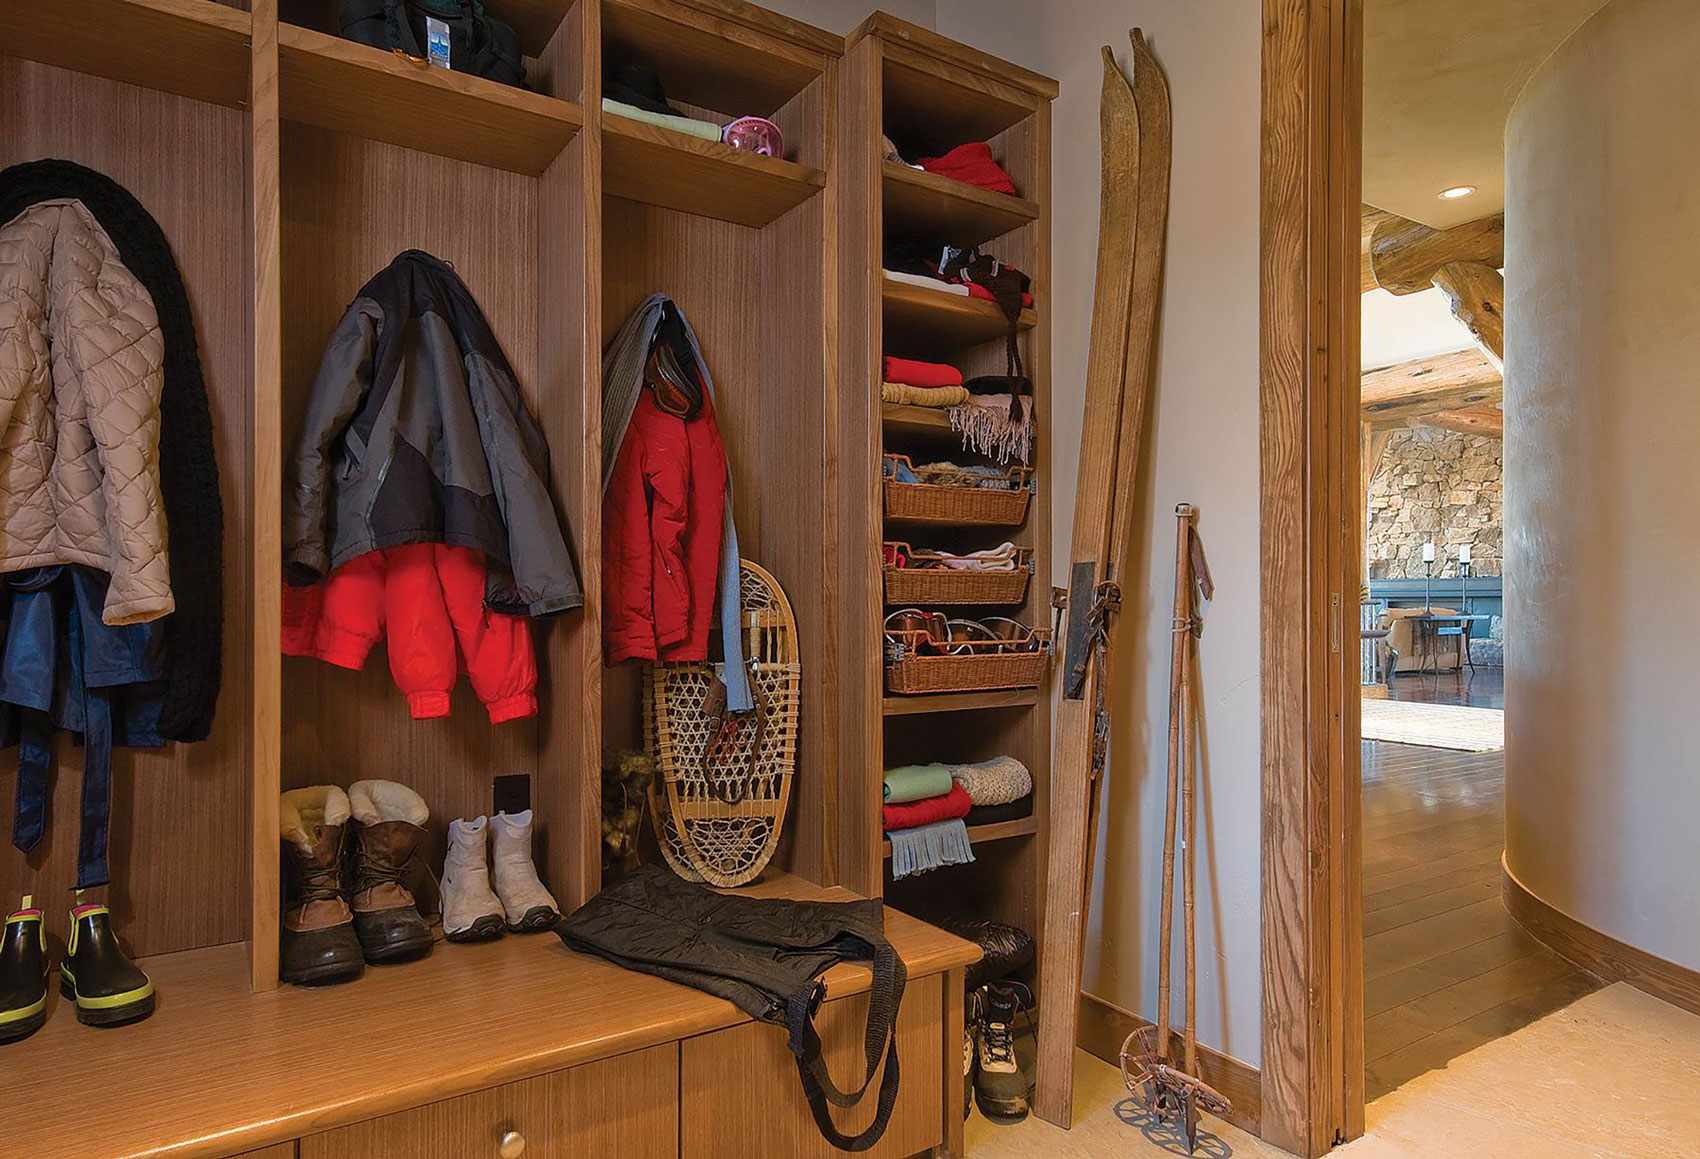 Denver mudroom with skis